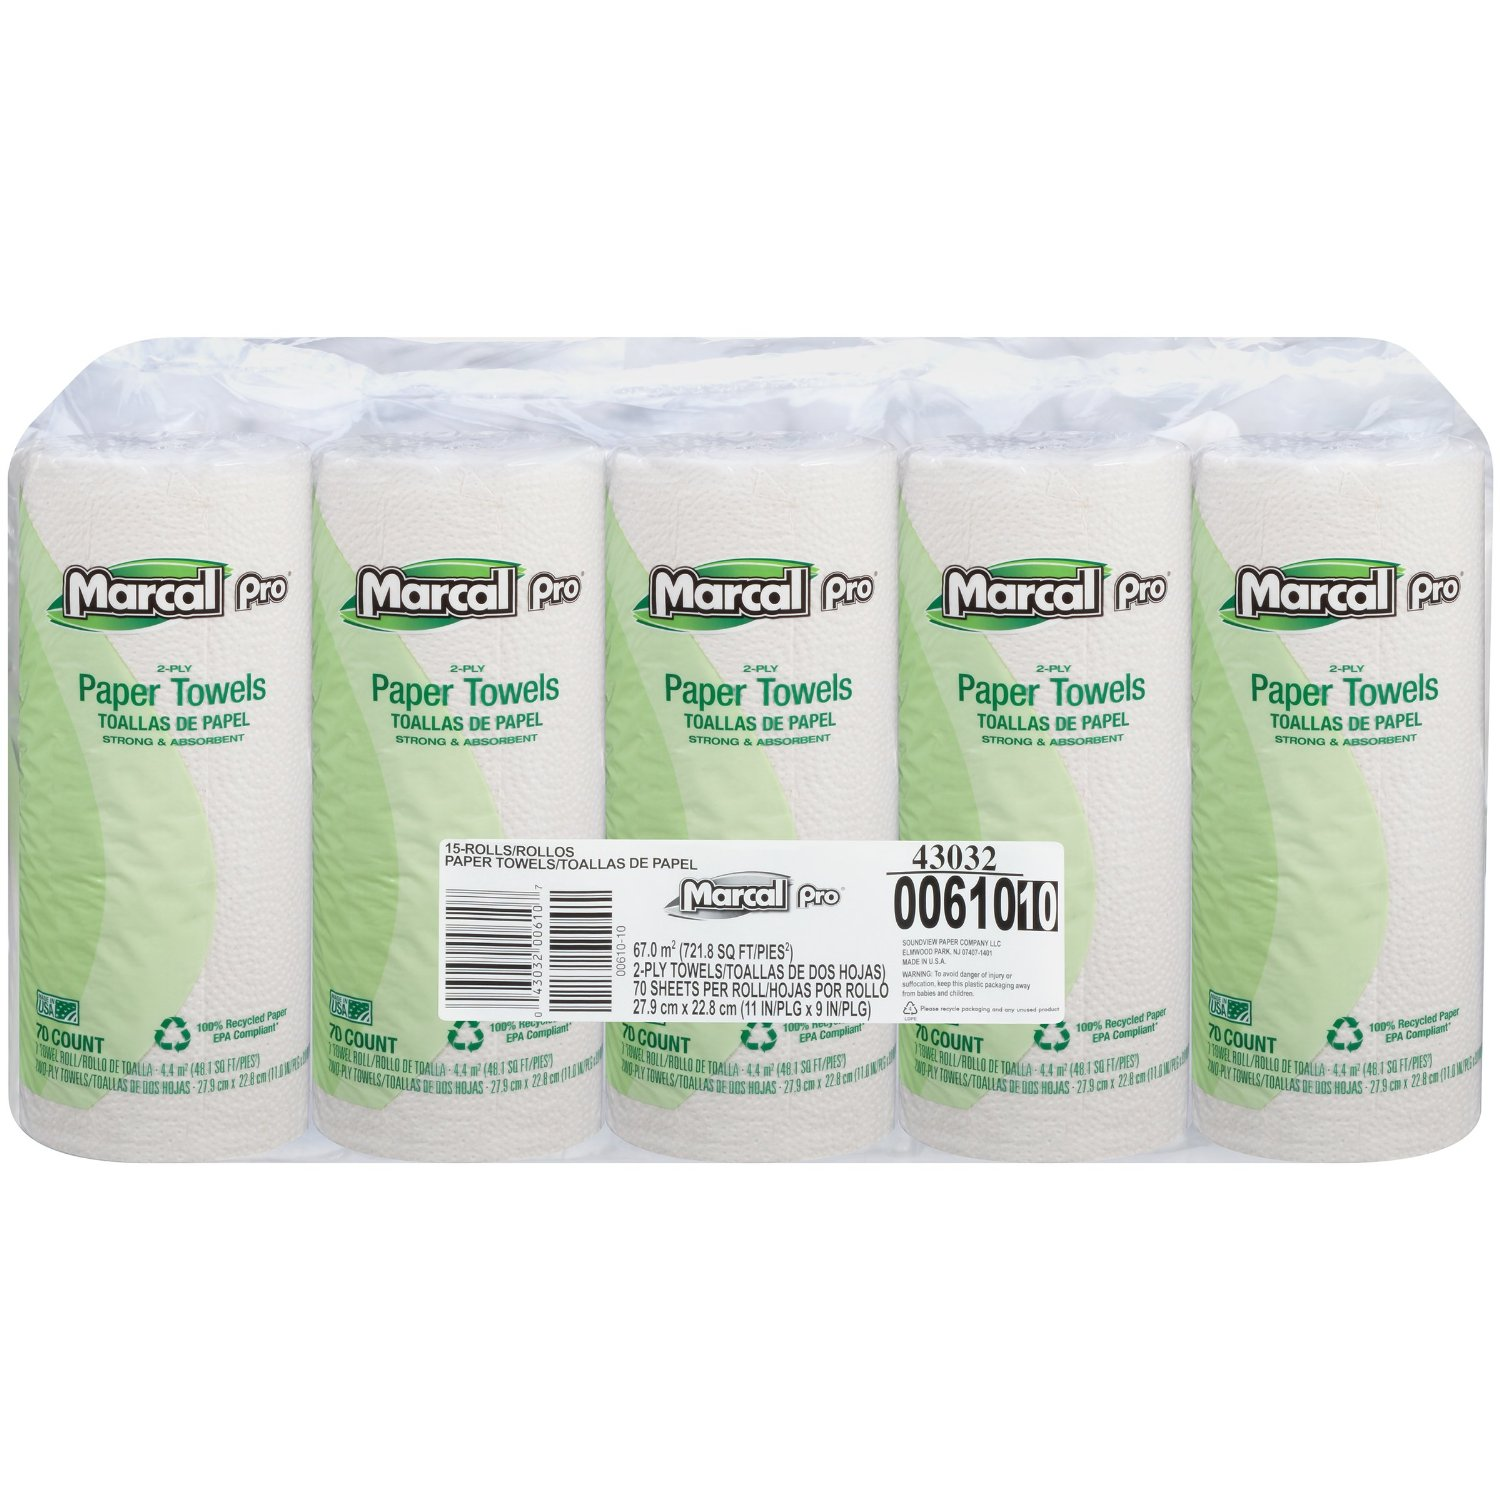 Marcal Pro #00610 100% Recycled Paper Towel, 2-Ply, White, 70 sheets per roll, 15 Individually Wrapped rolls per bundle